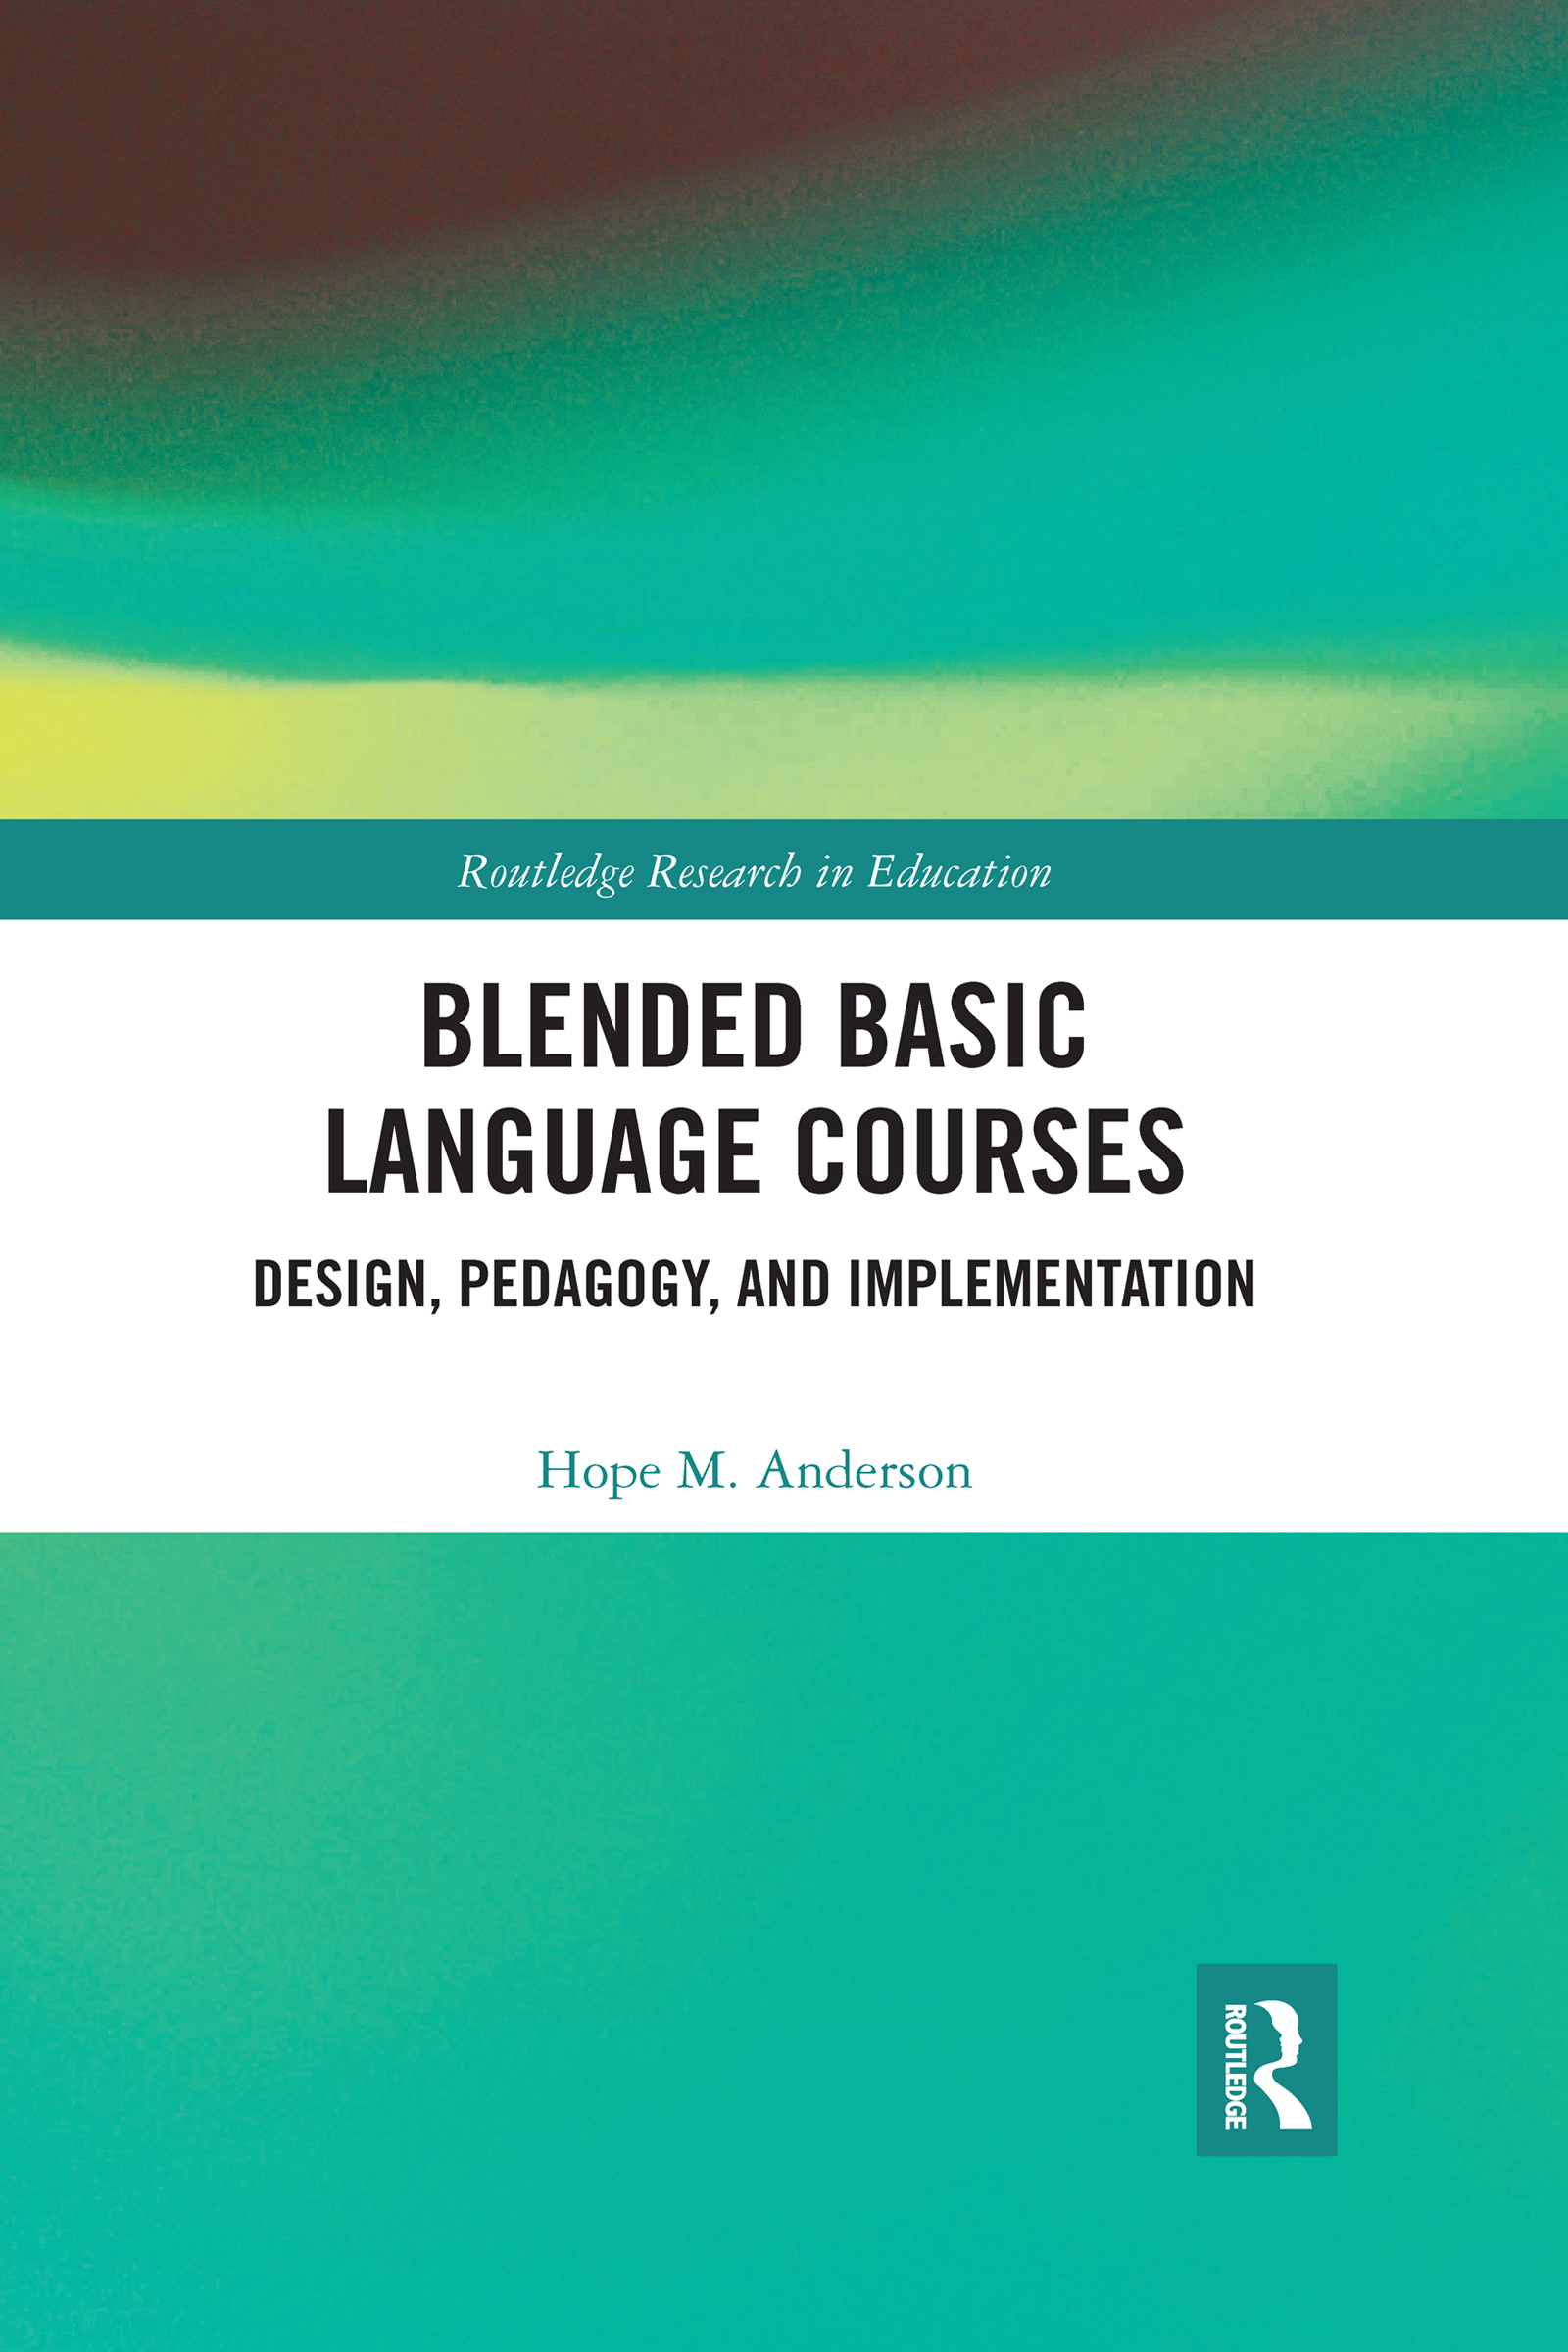 Blended Basic Language Courses